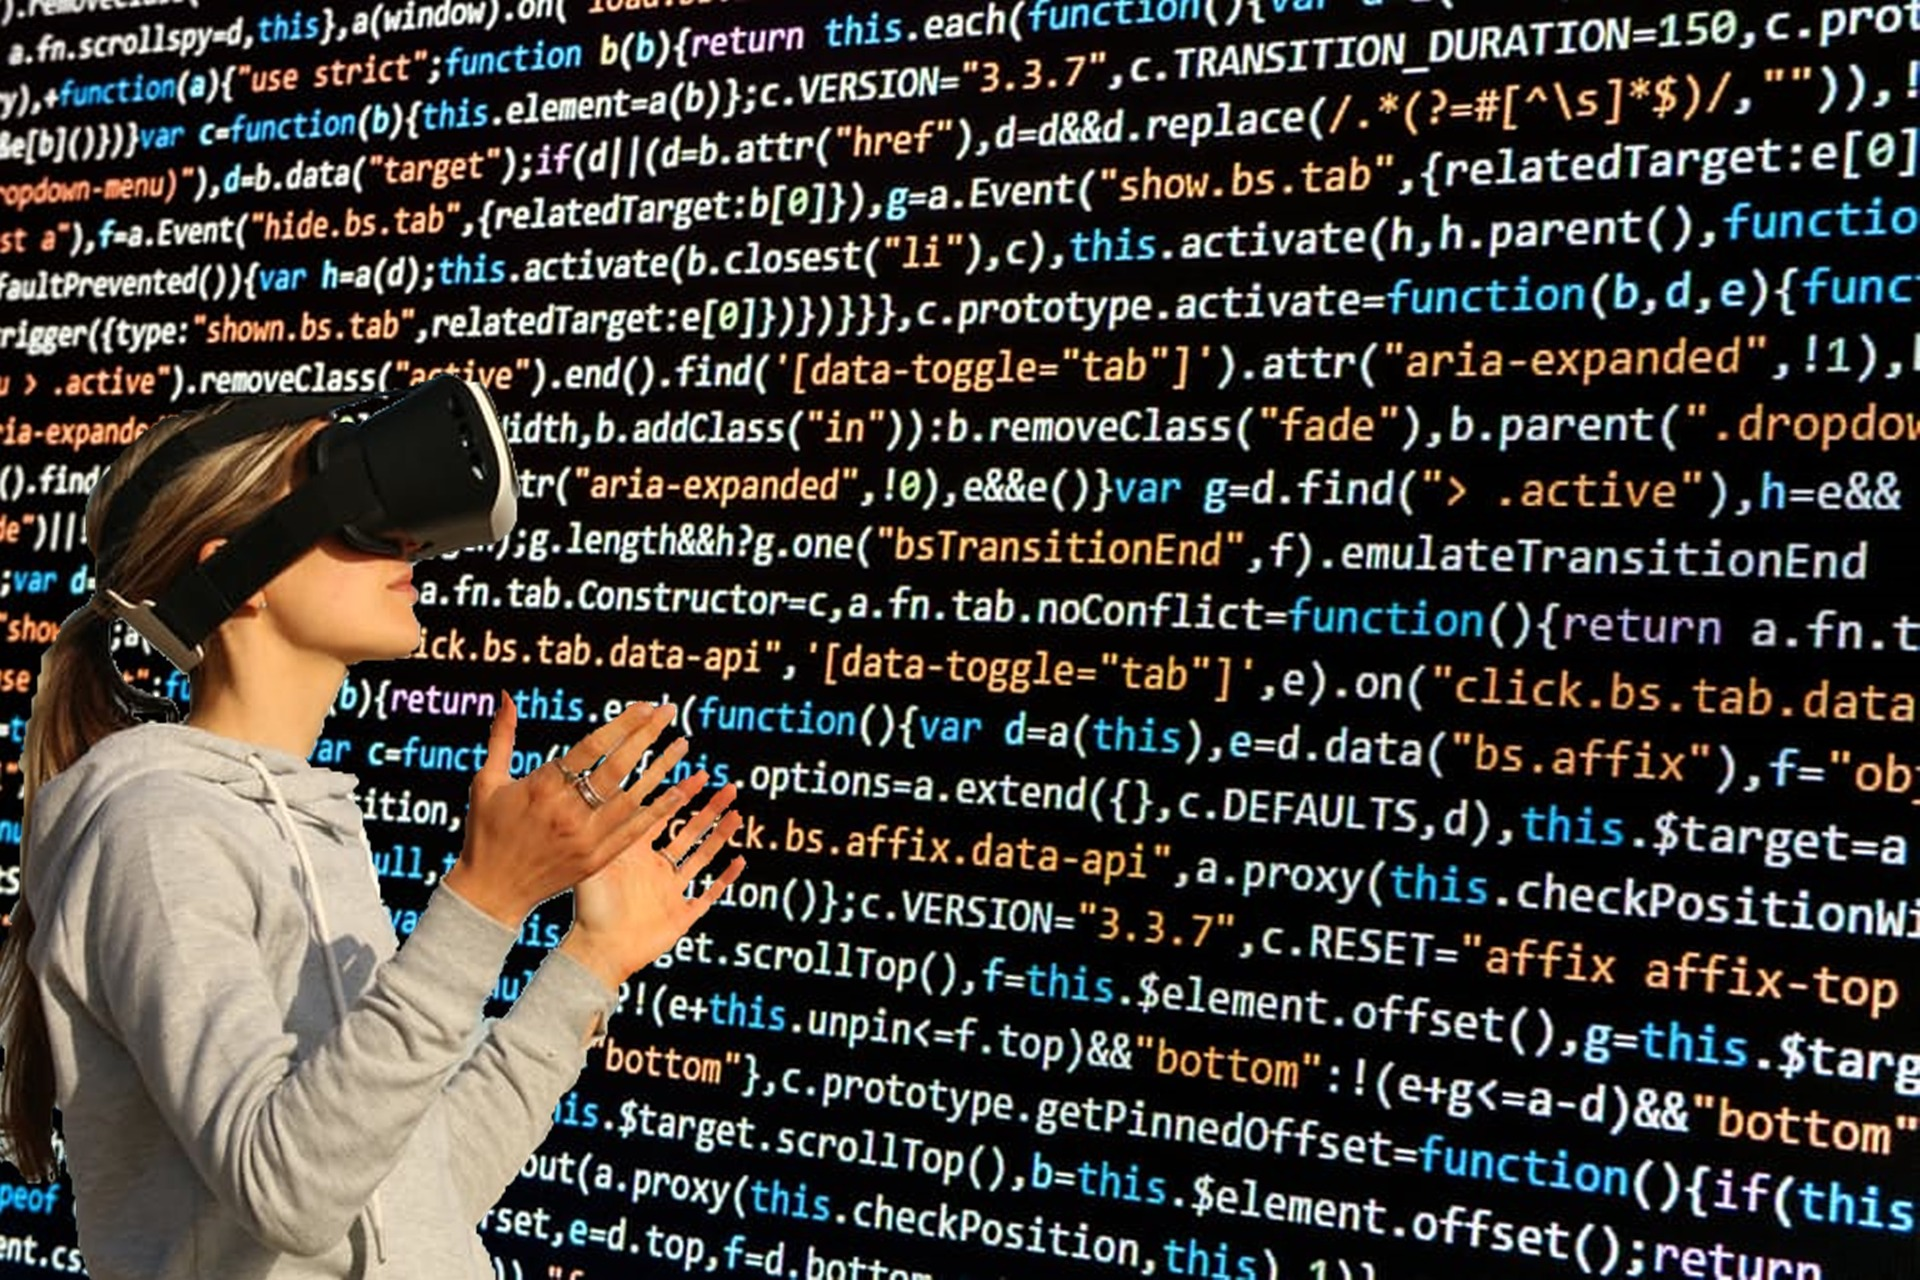 woman in VR glasses looks at computer code